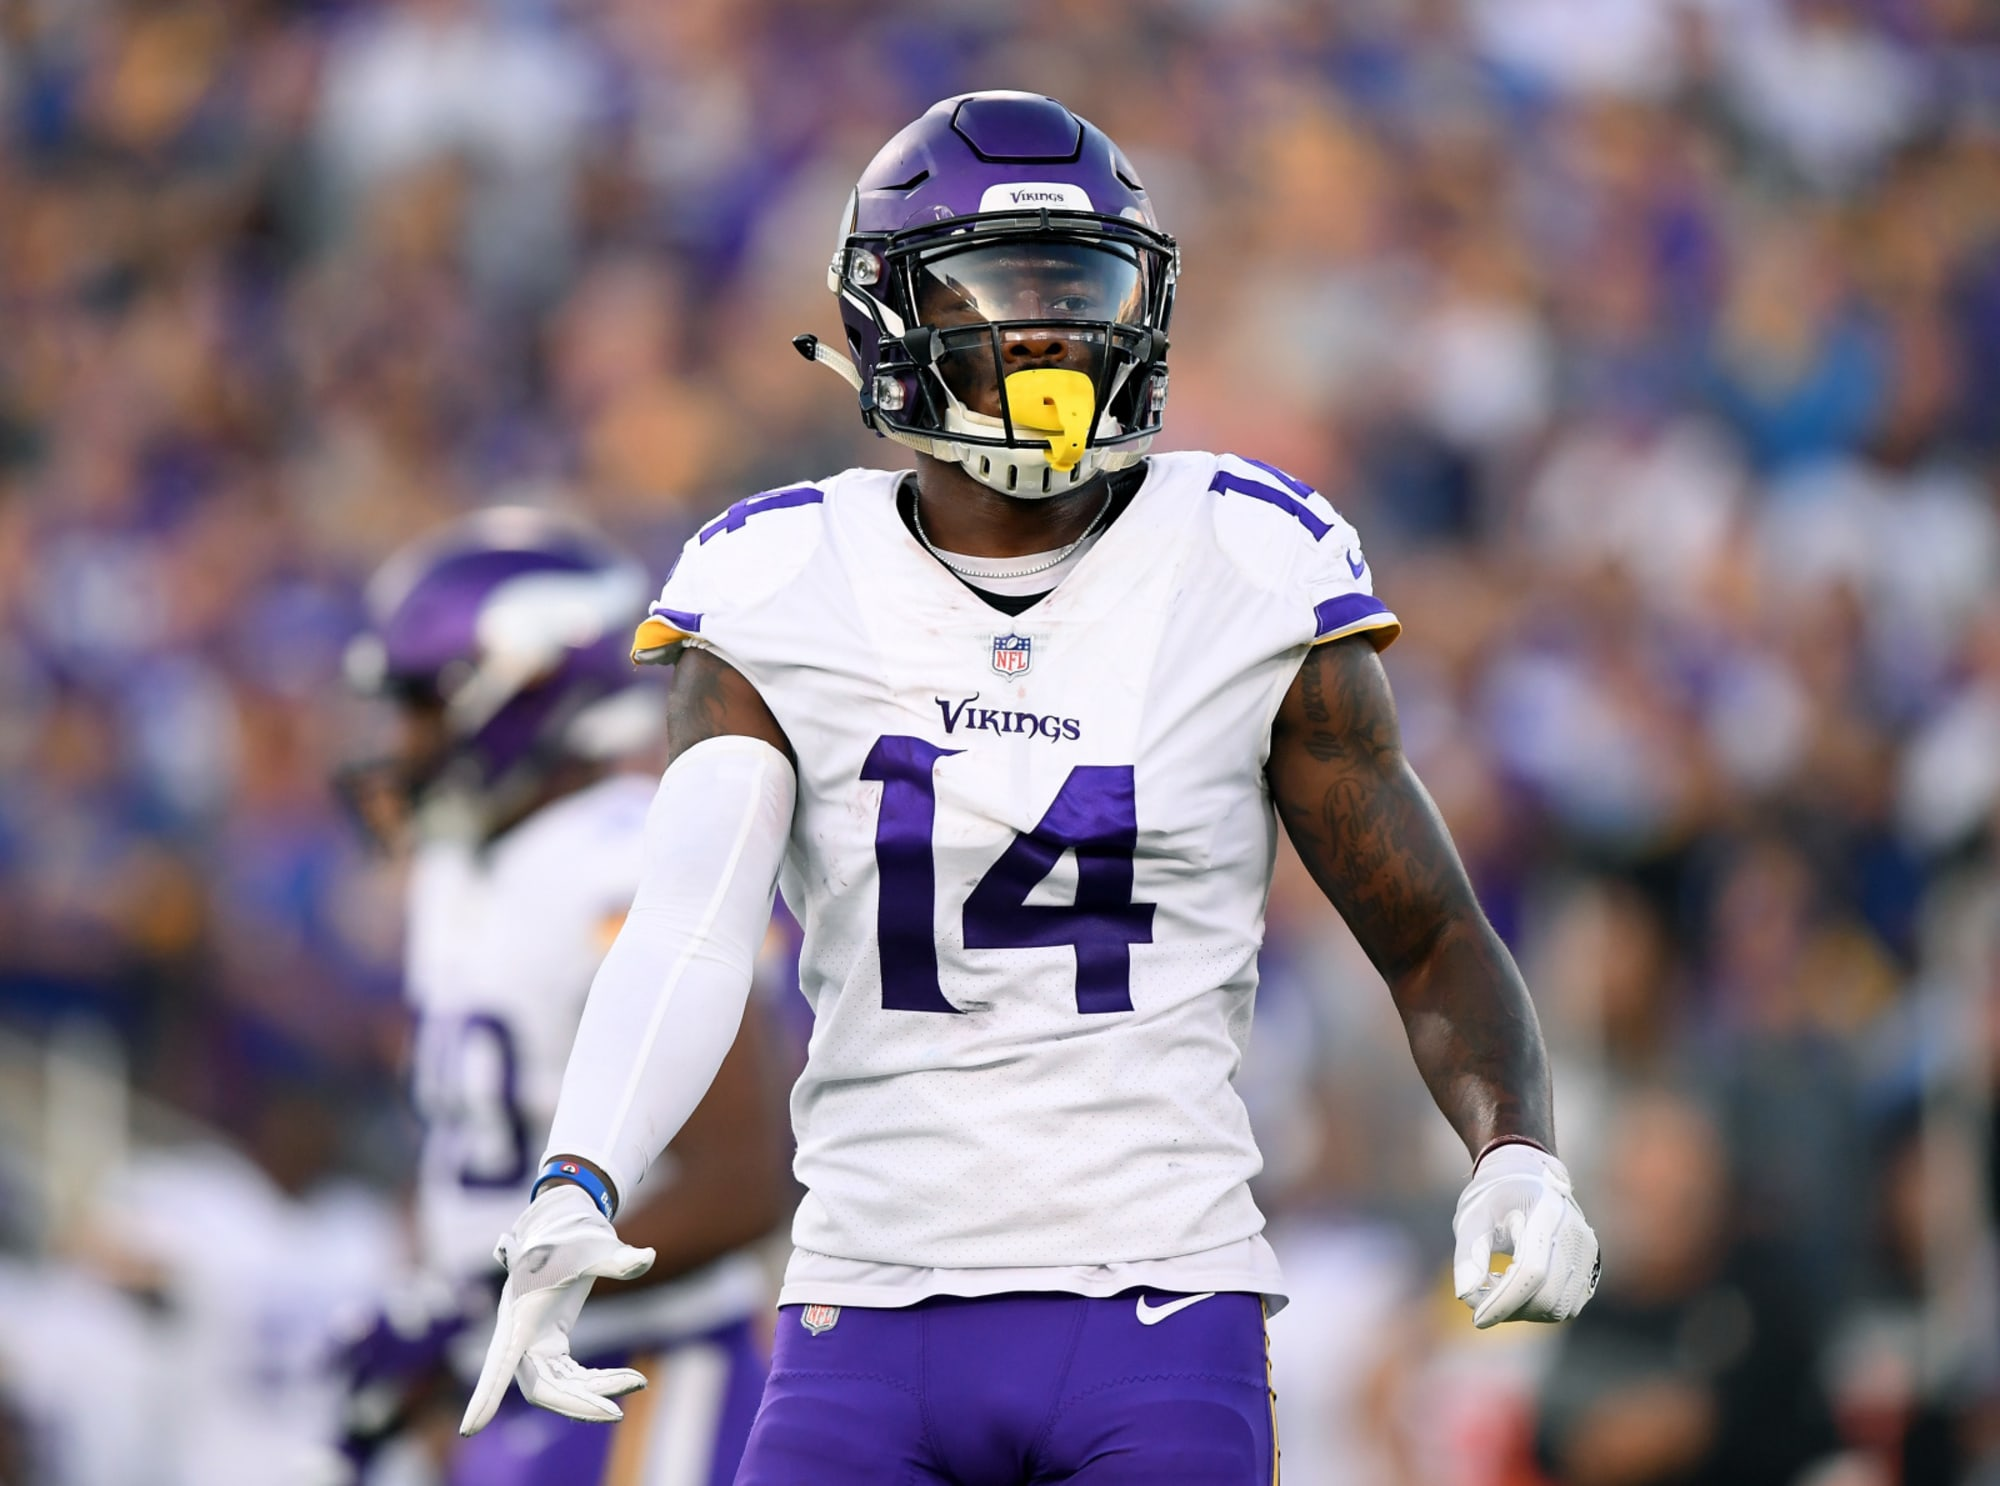 What Is The Story Behind Why Stefon Diggs Wears The No 14